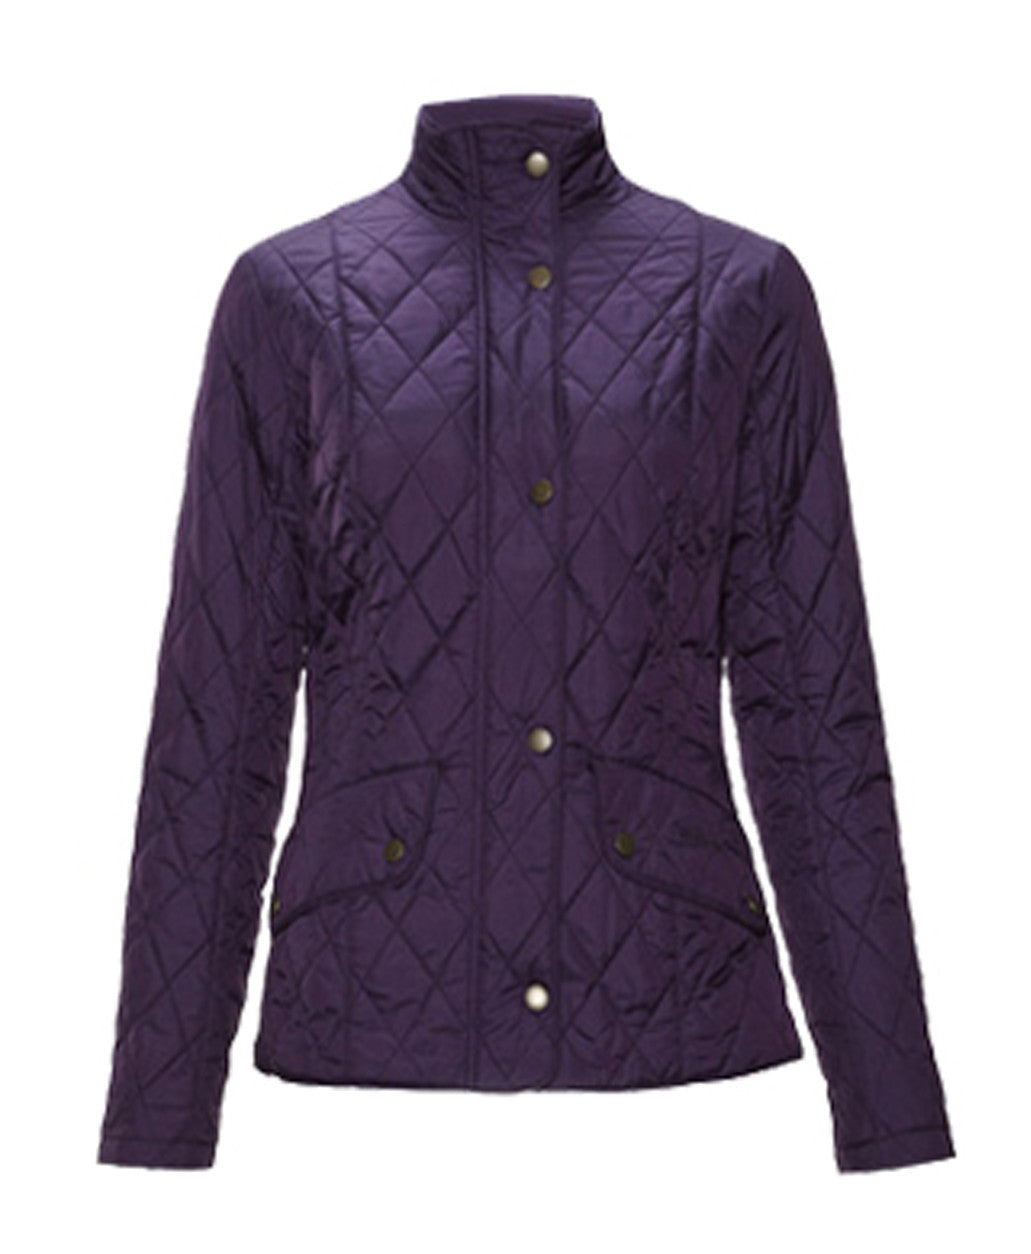 Barbour Flyweight Cavalry Jacket - Elderberry - North Shore Saddlery